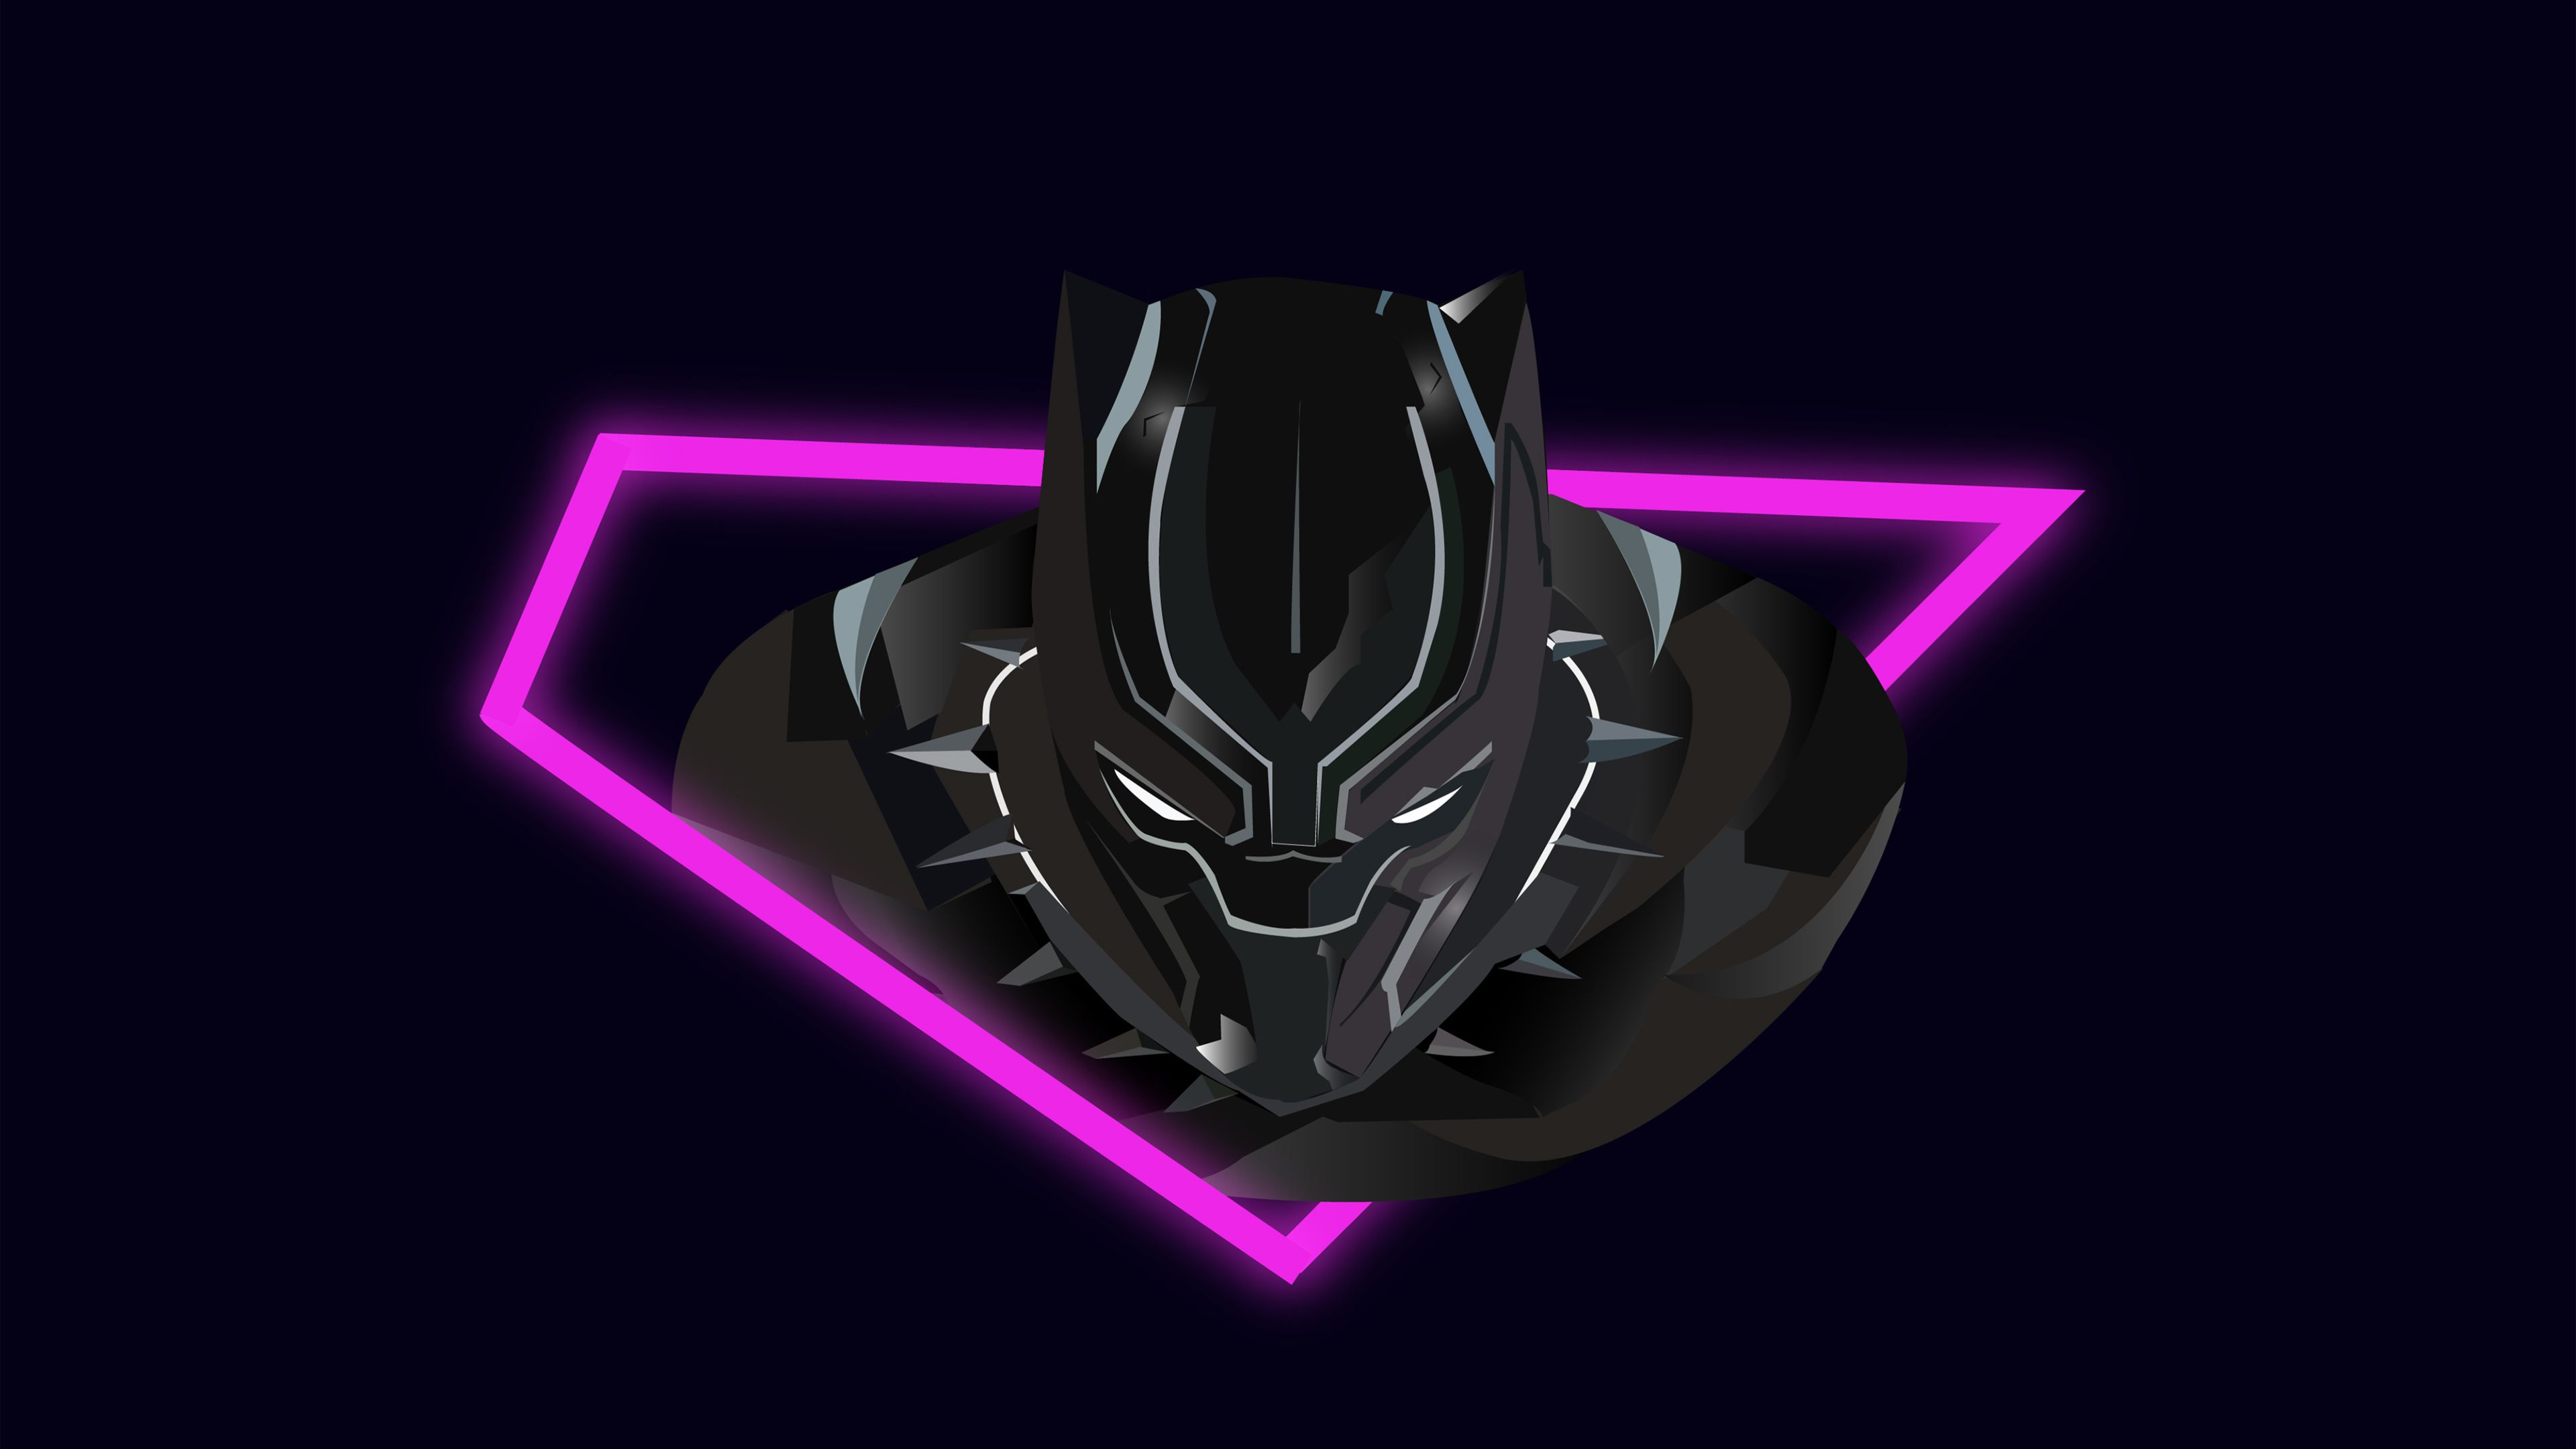 Black Panther Vector Art 4k Superheroes Wallpapers Hd Wallpapers Black Panther Wallpapers Behance Wallpapers A Black Panther Vector Art Superhero Wallpaper